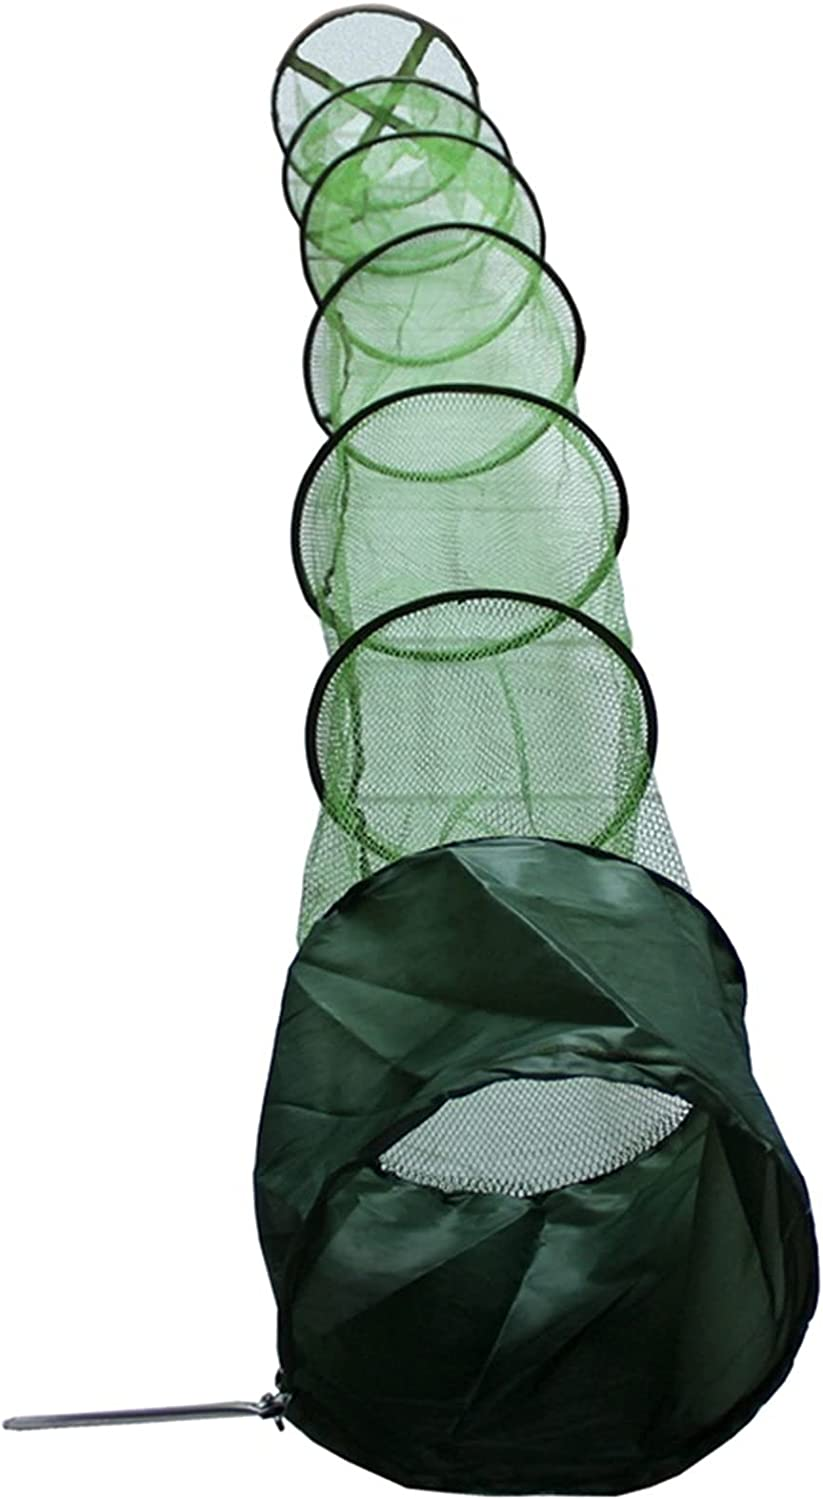 Outdoor Fishnet mesh Folding Quick-Drying Gorgeous 100% quality warranty Fish Basket Size More